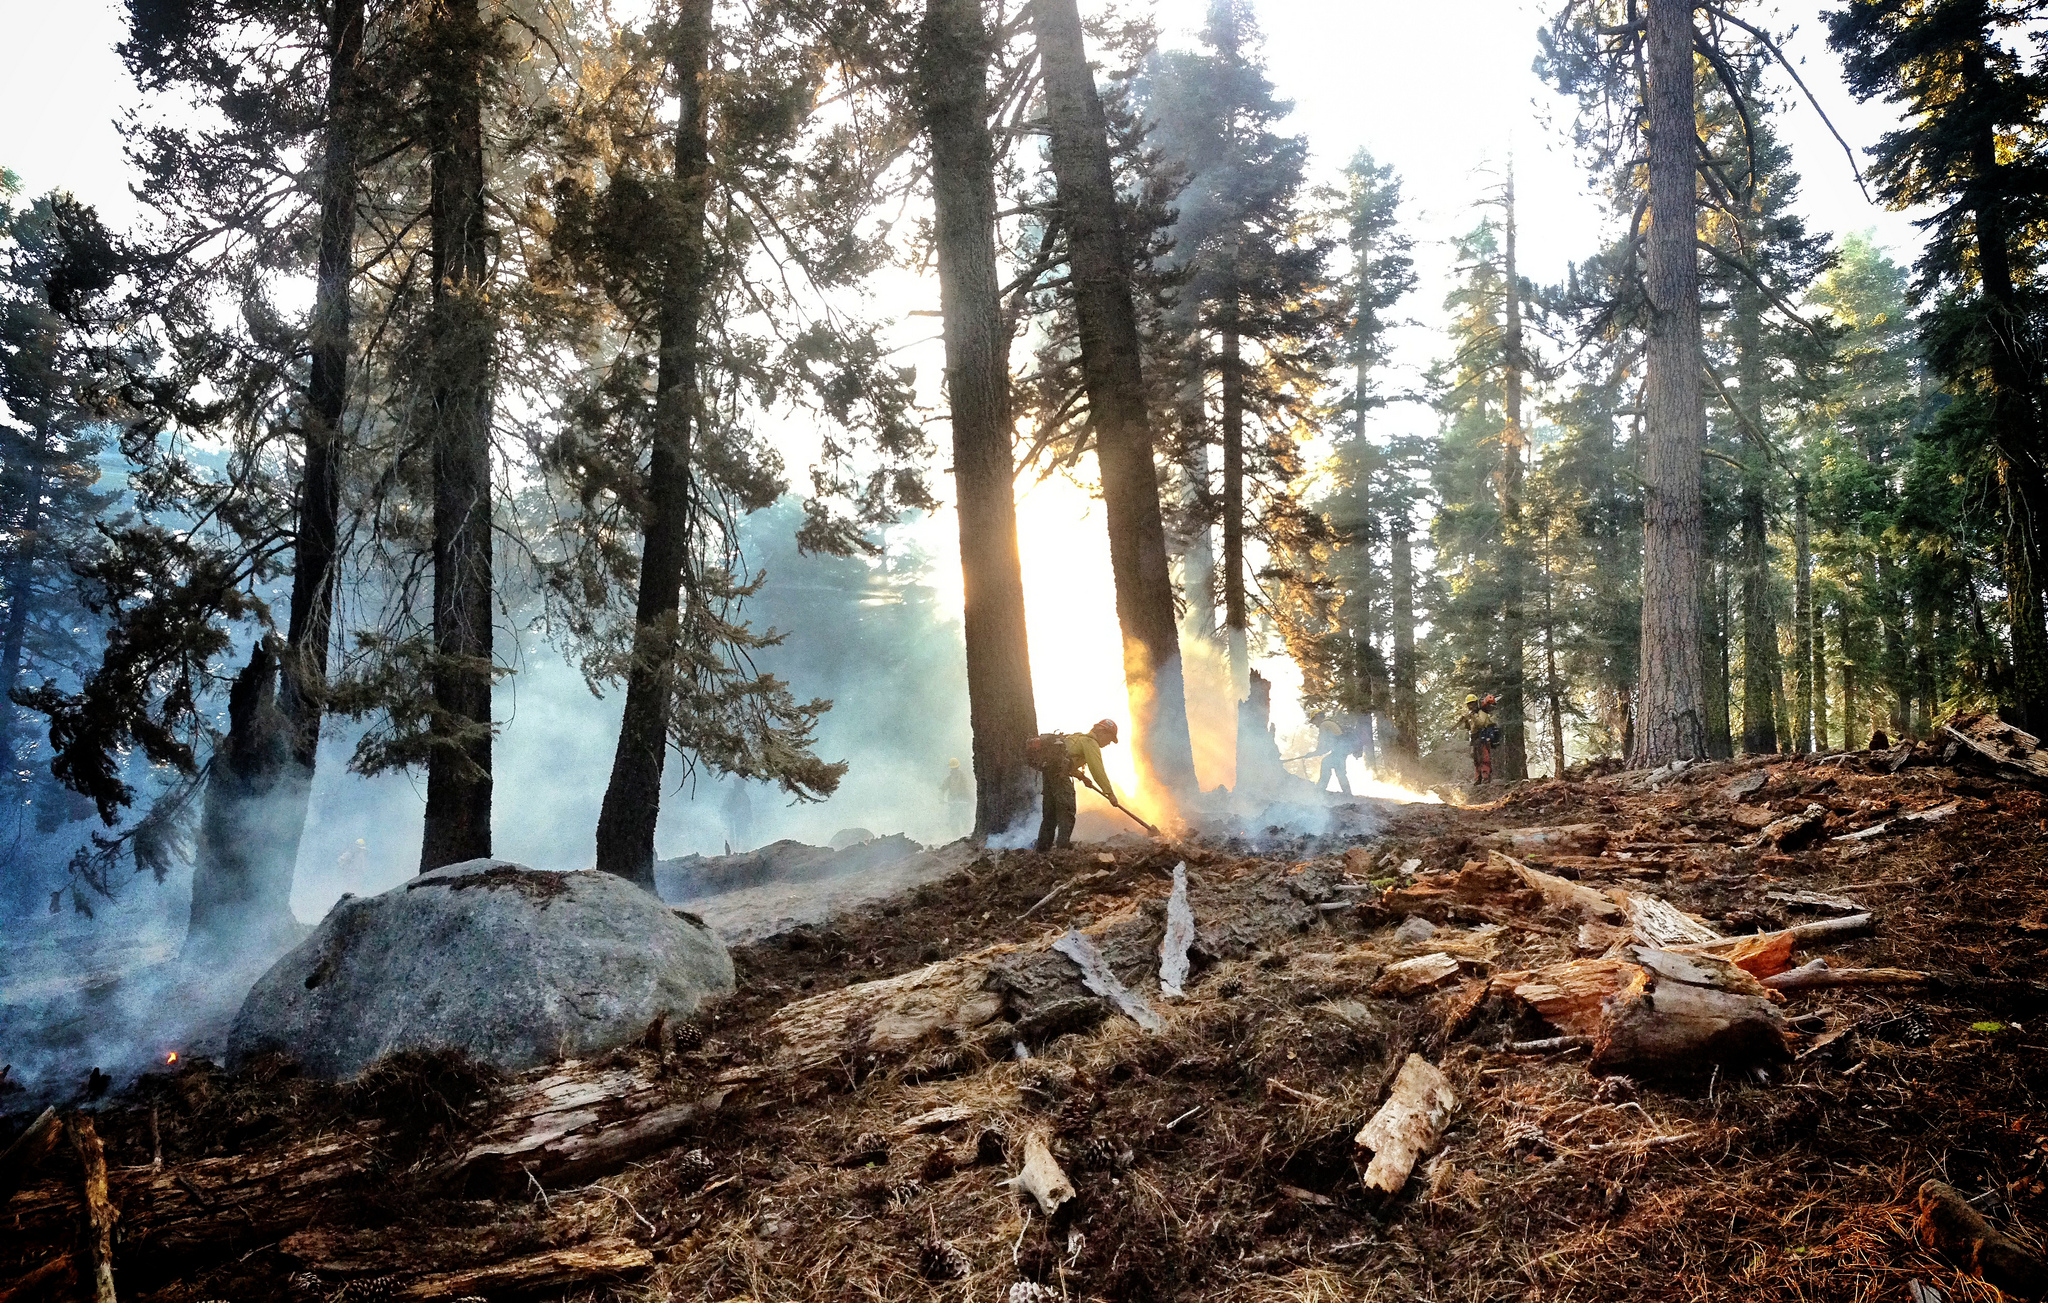 A wildland firefighter works on a small fire in a Forest.